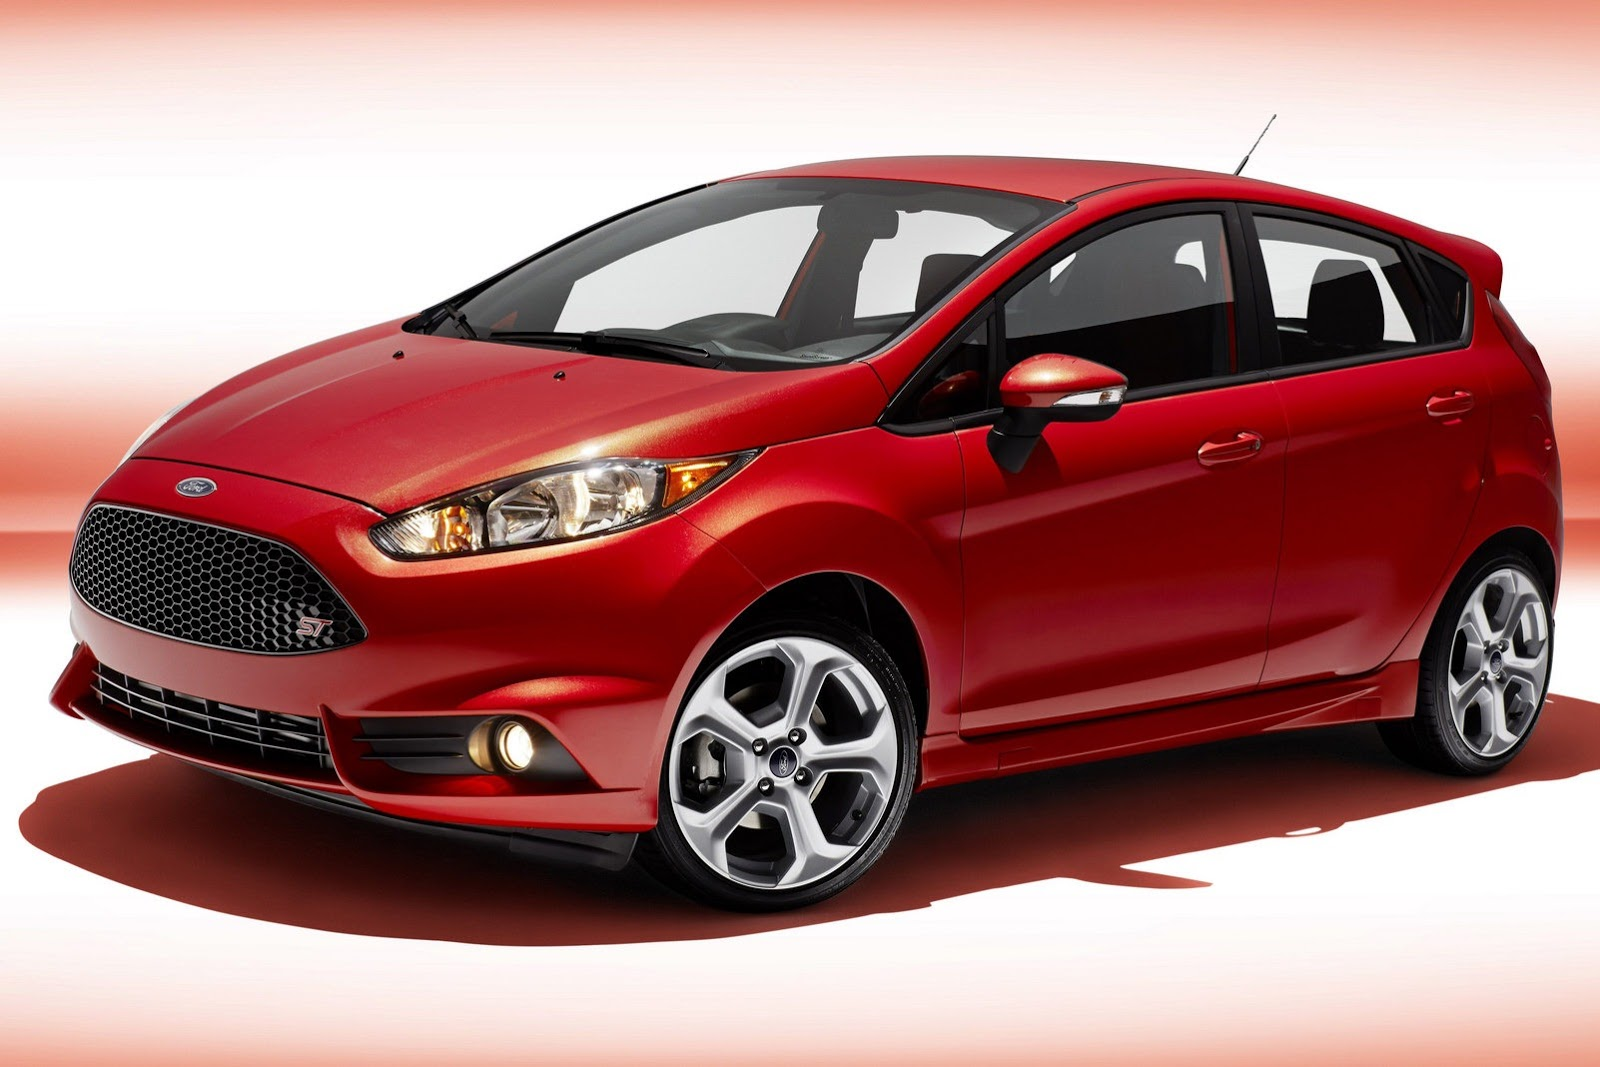 ford fiesta st photo gallery car gallery premium hatchbacks autocar india. Black Bedroom Furniture Sets. Home Design Ideas